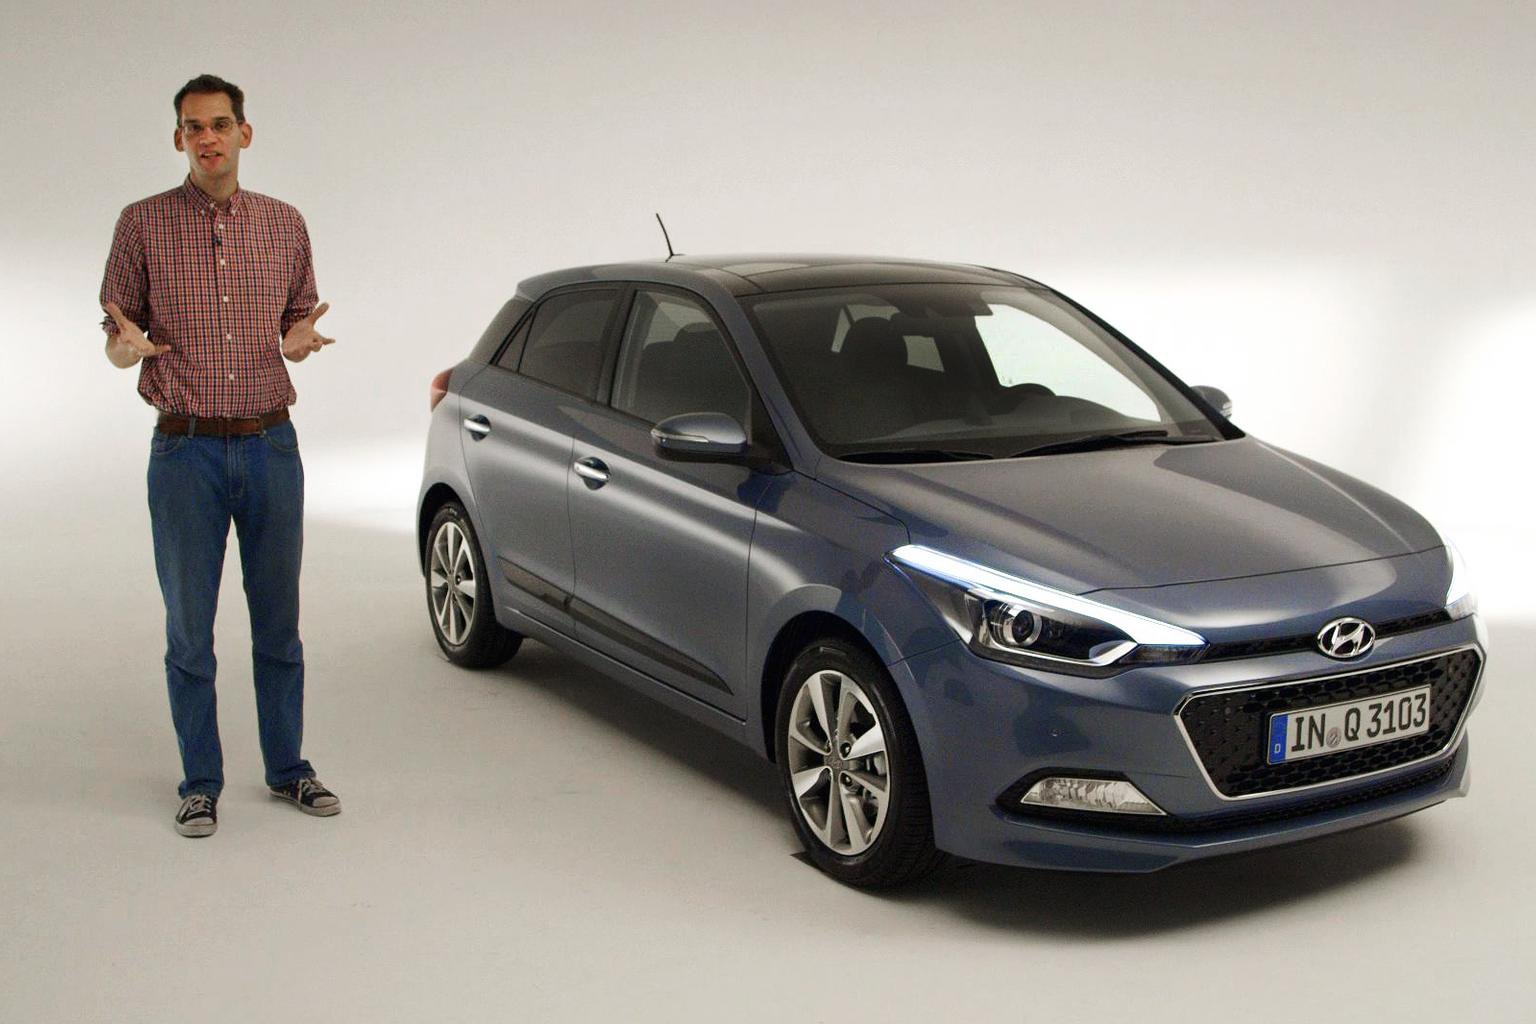 Video: five key things to know about the new Hyundai i20